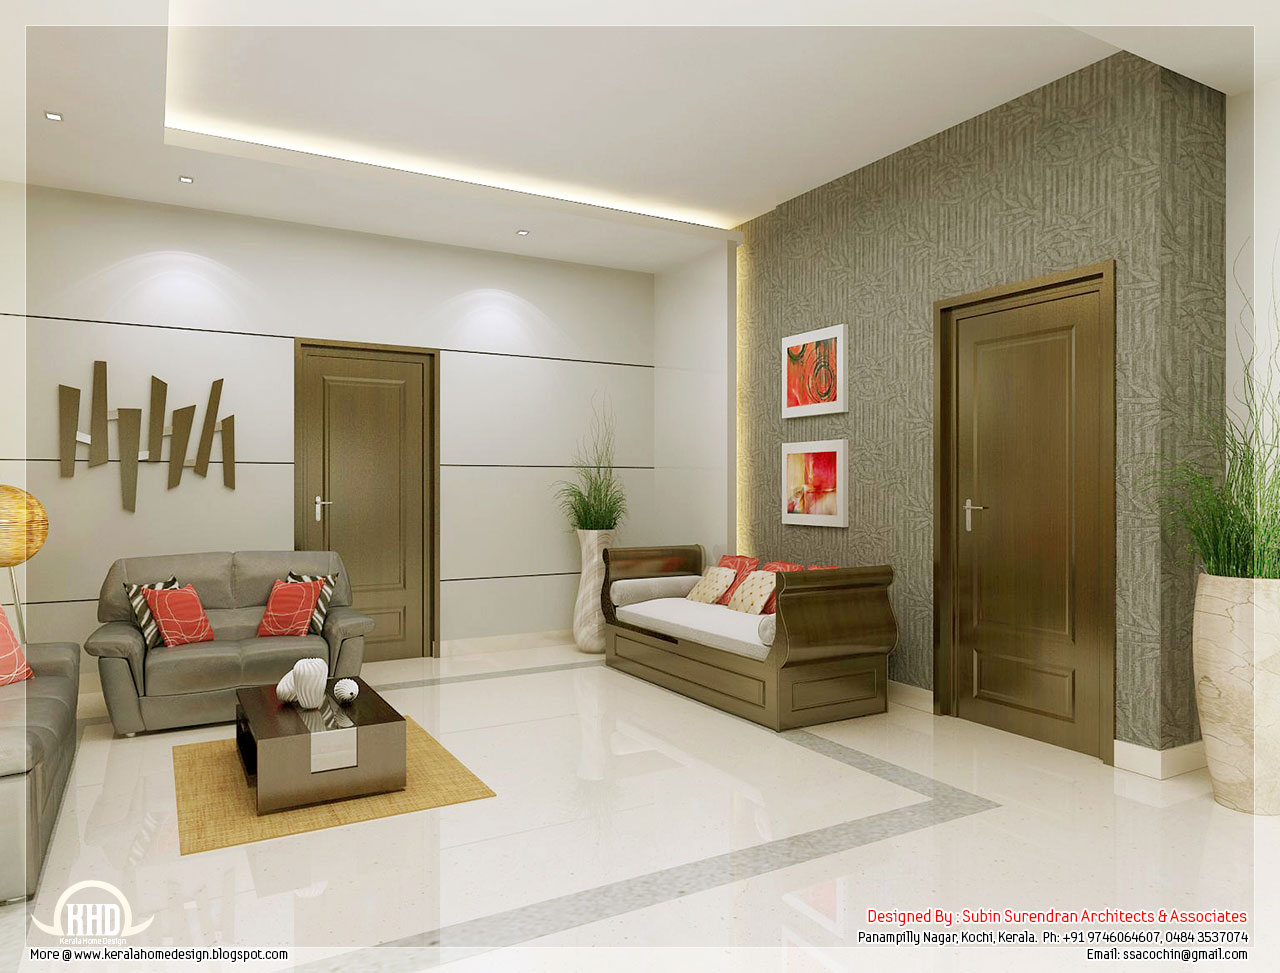 Awesome 3d interior renderings kerala home design and for Home interior design ideas uk